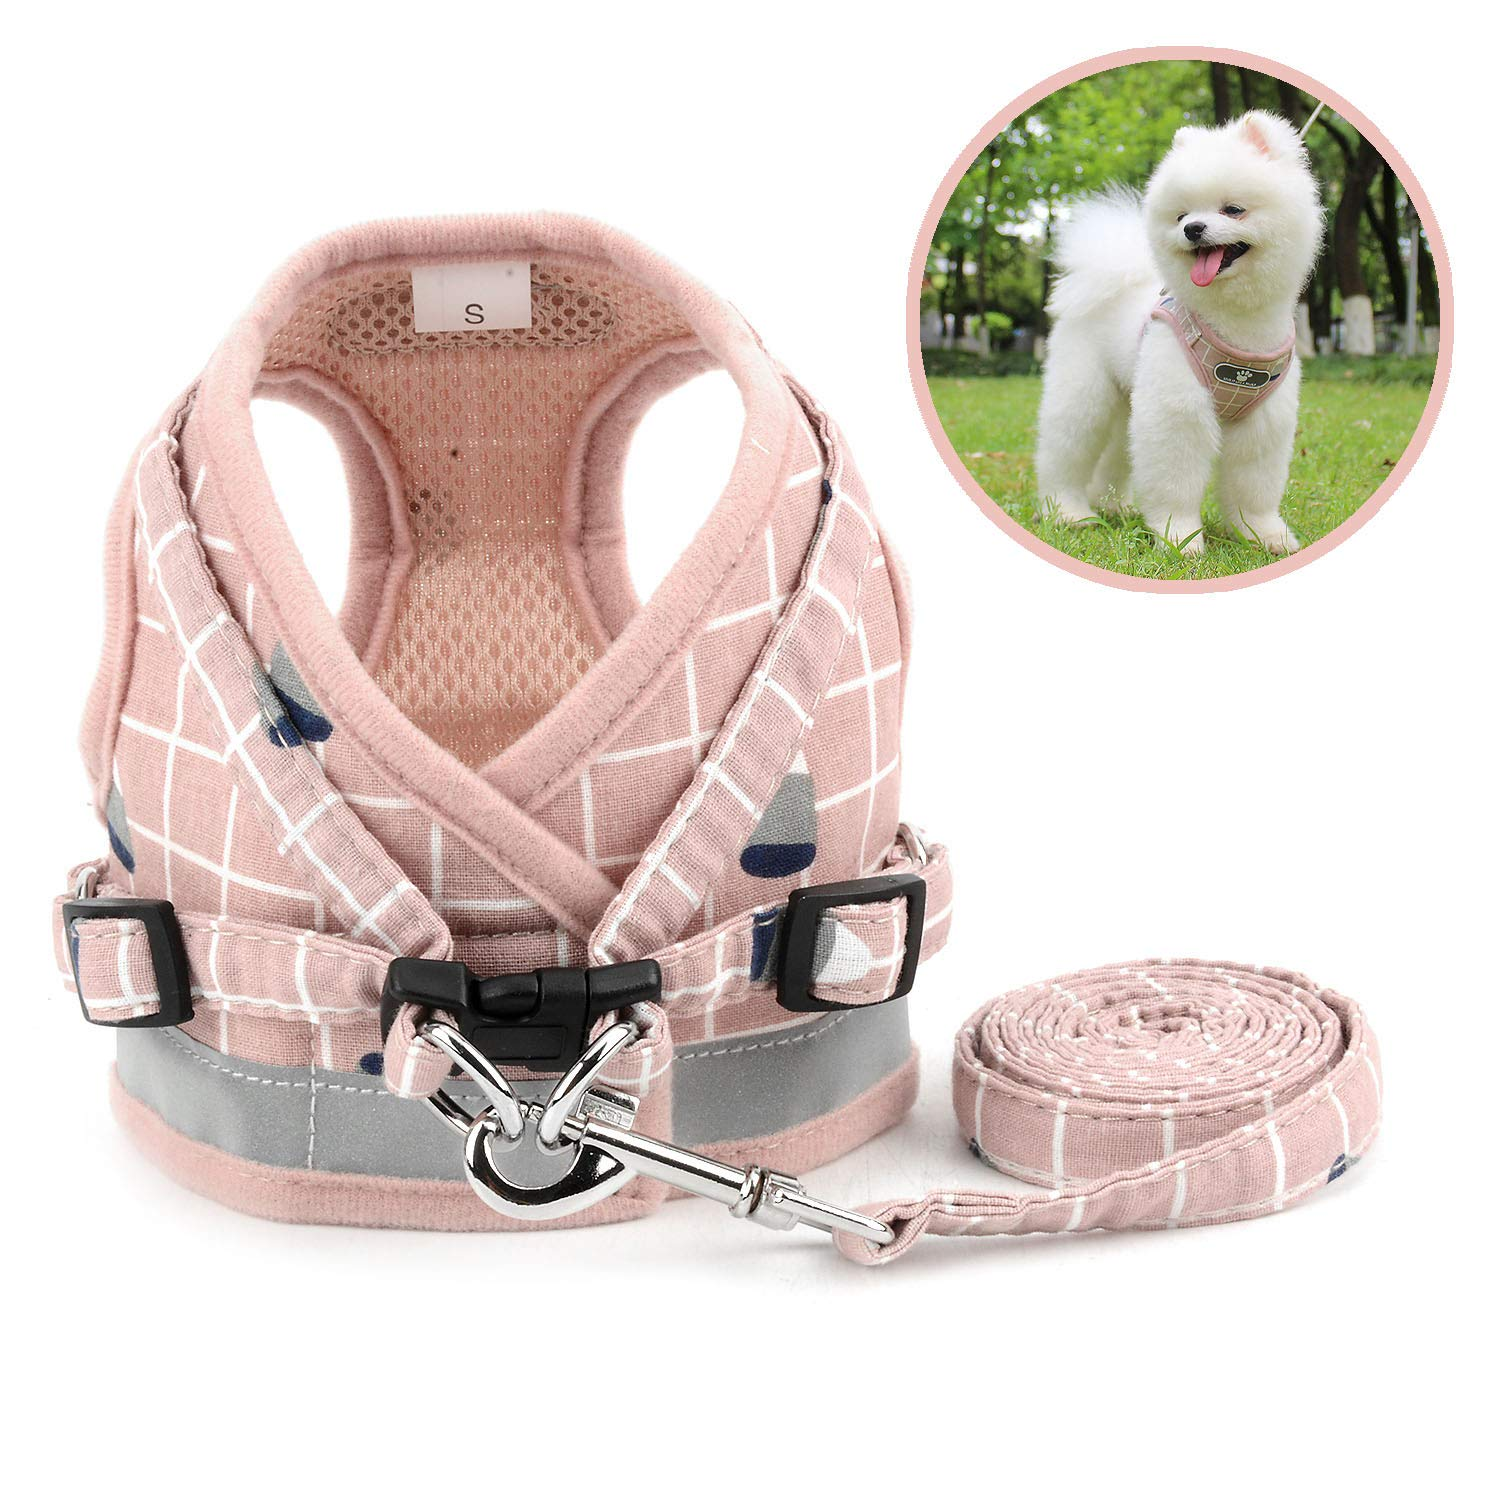 Zunea No Pull Small Dog Harness and Leash Set Adjustable Reflective Step-in Chihuahua Vest Harnesses Mesh Padded Plaid Escape Proof Walking Puppy Jacket for Boy Girl Pet Dogs Cats Pink XS by Zunea